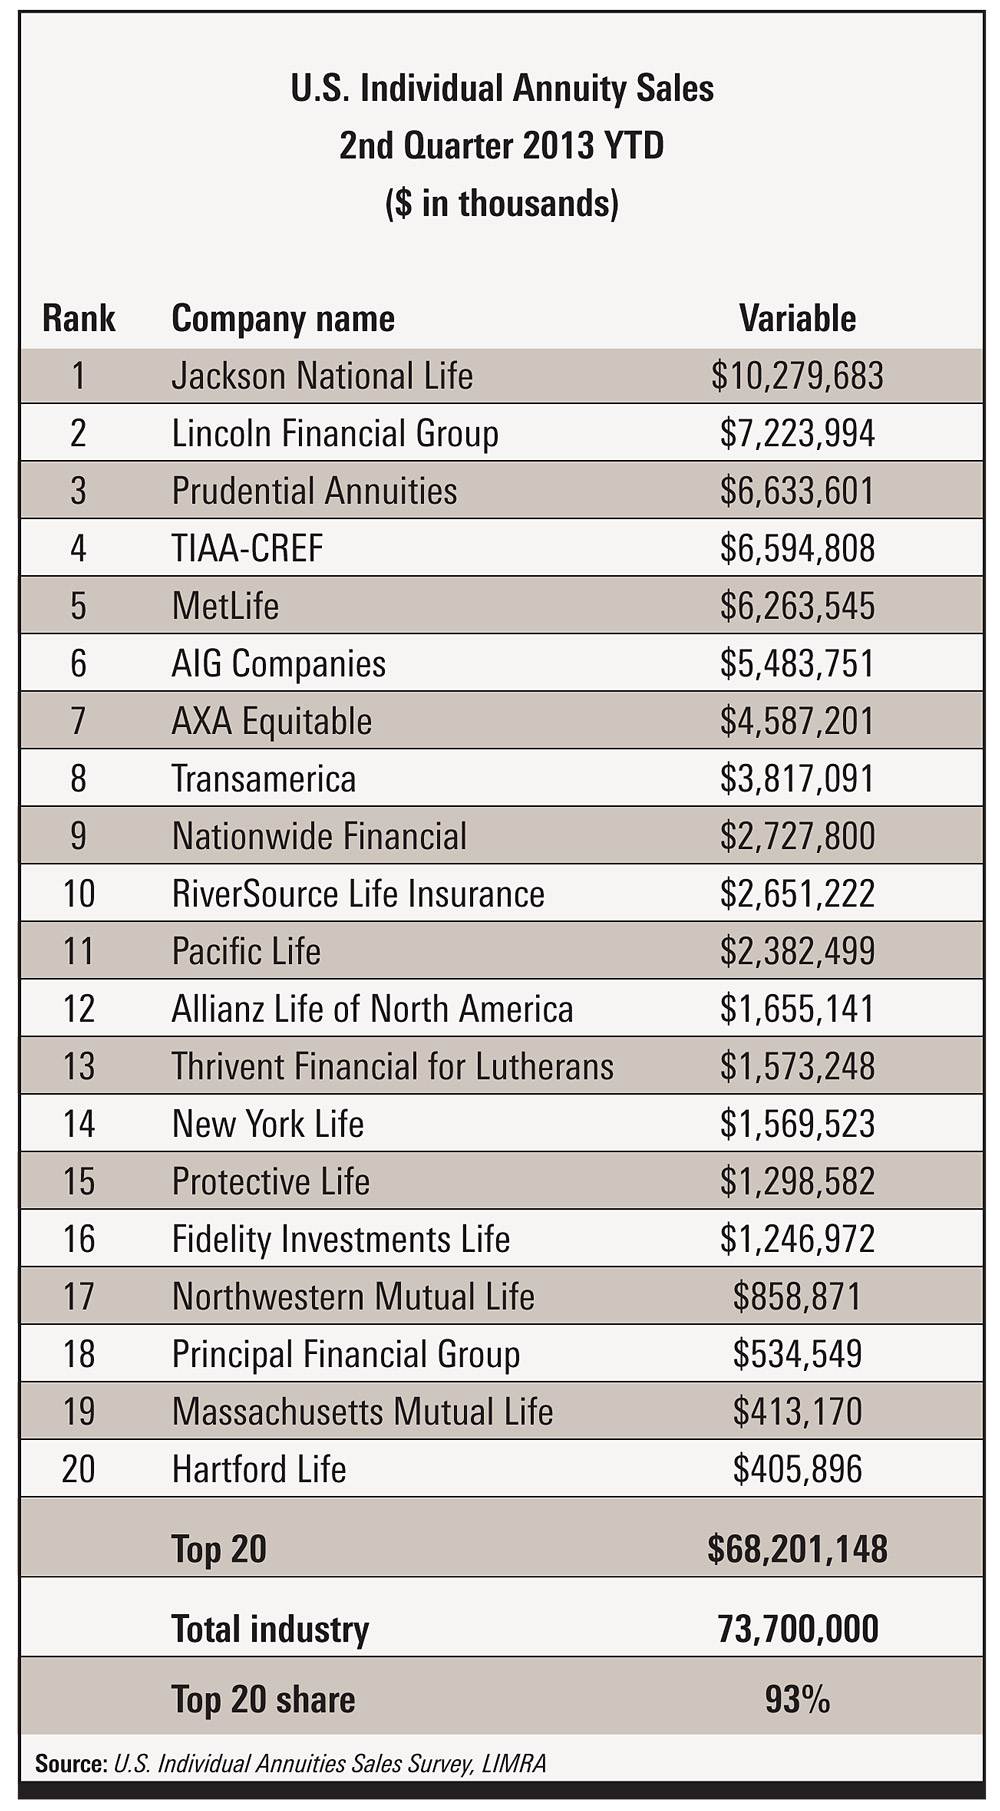 Top 20 companies for variable annuity sales. Source: LIMRA